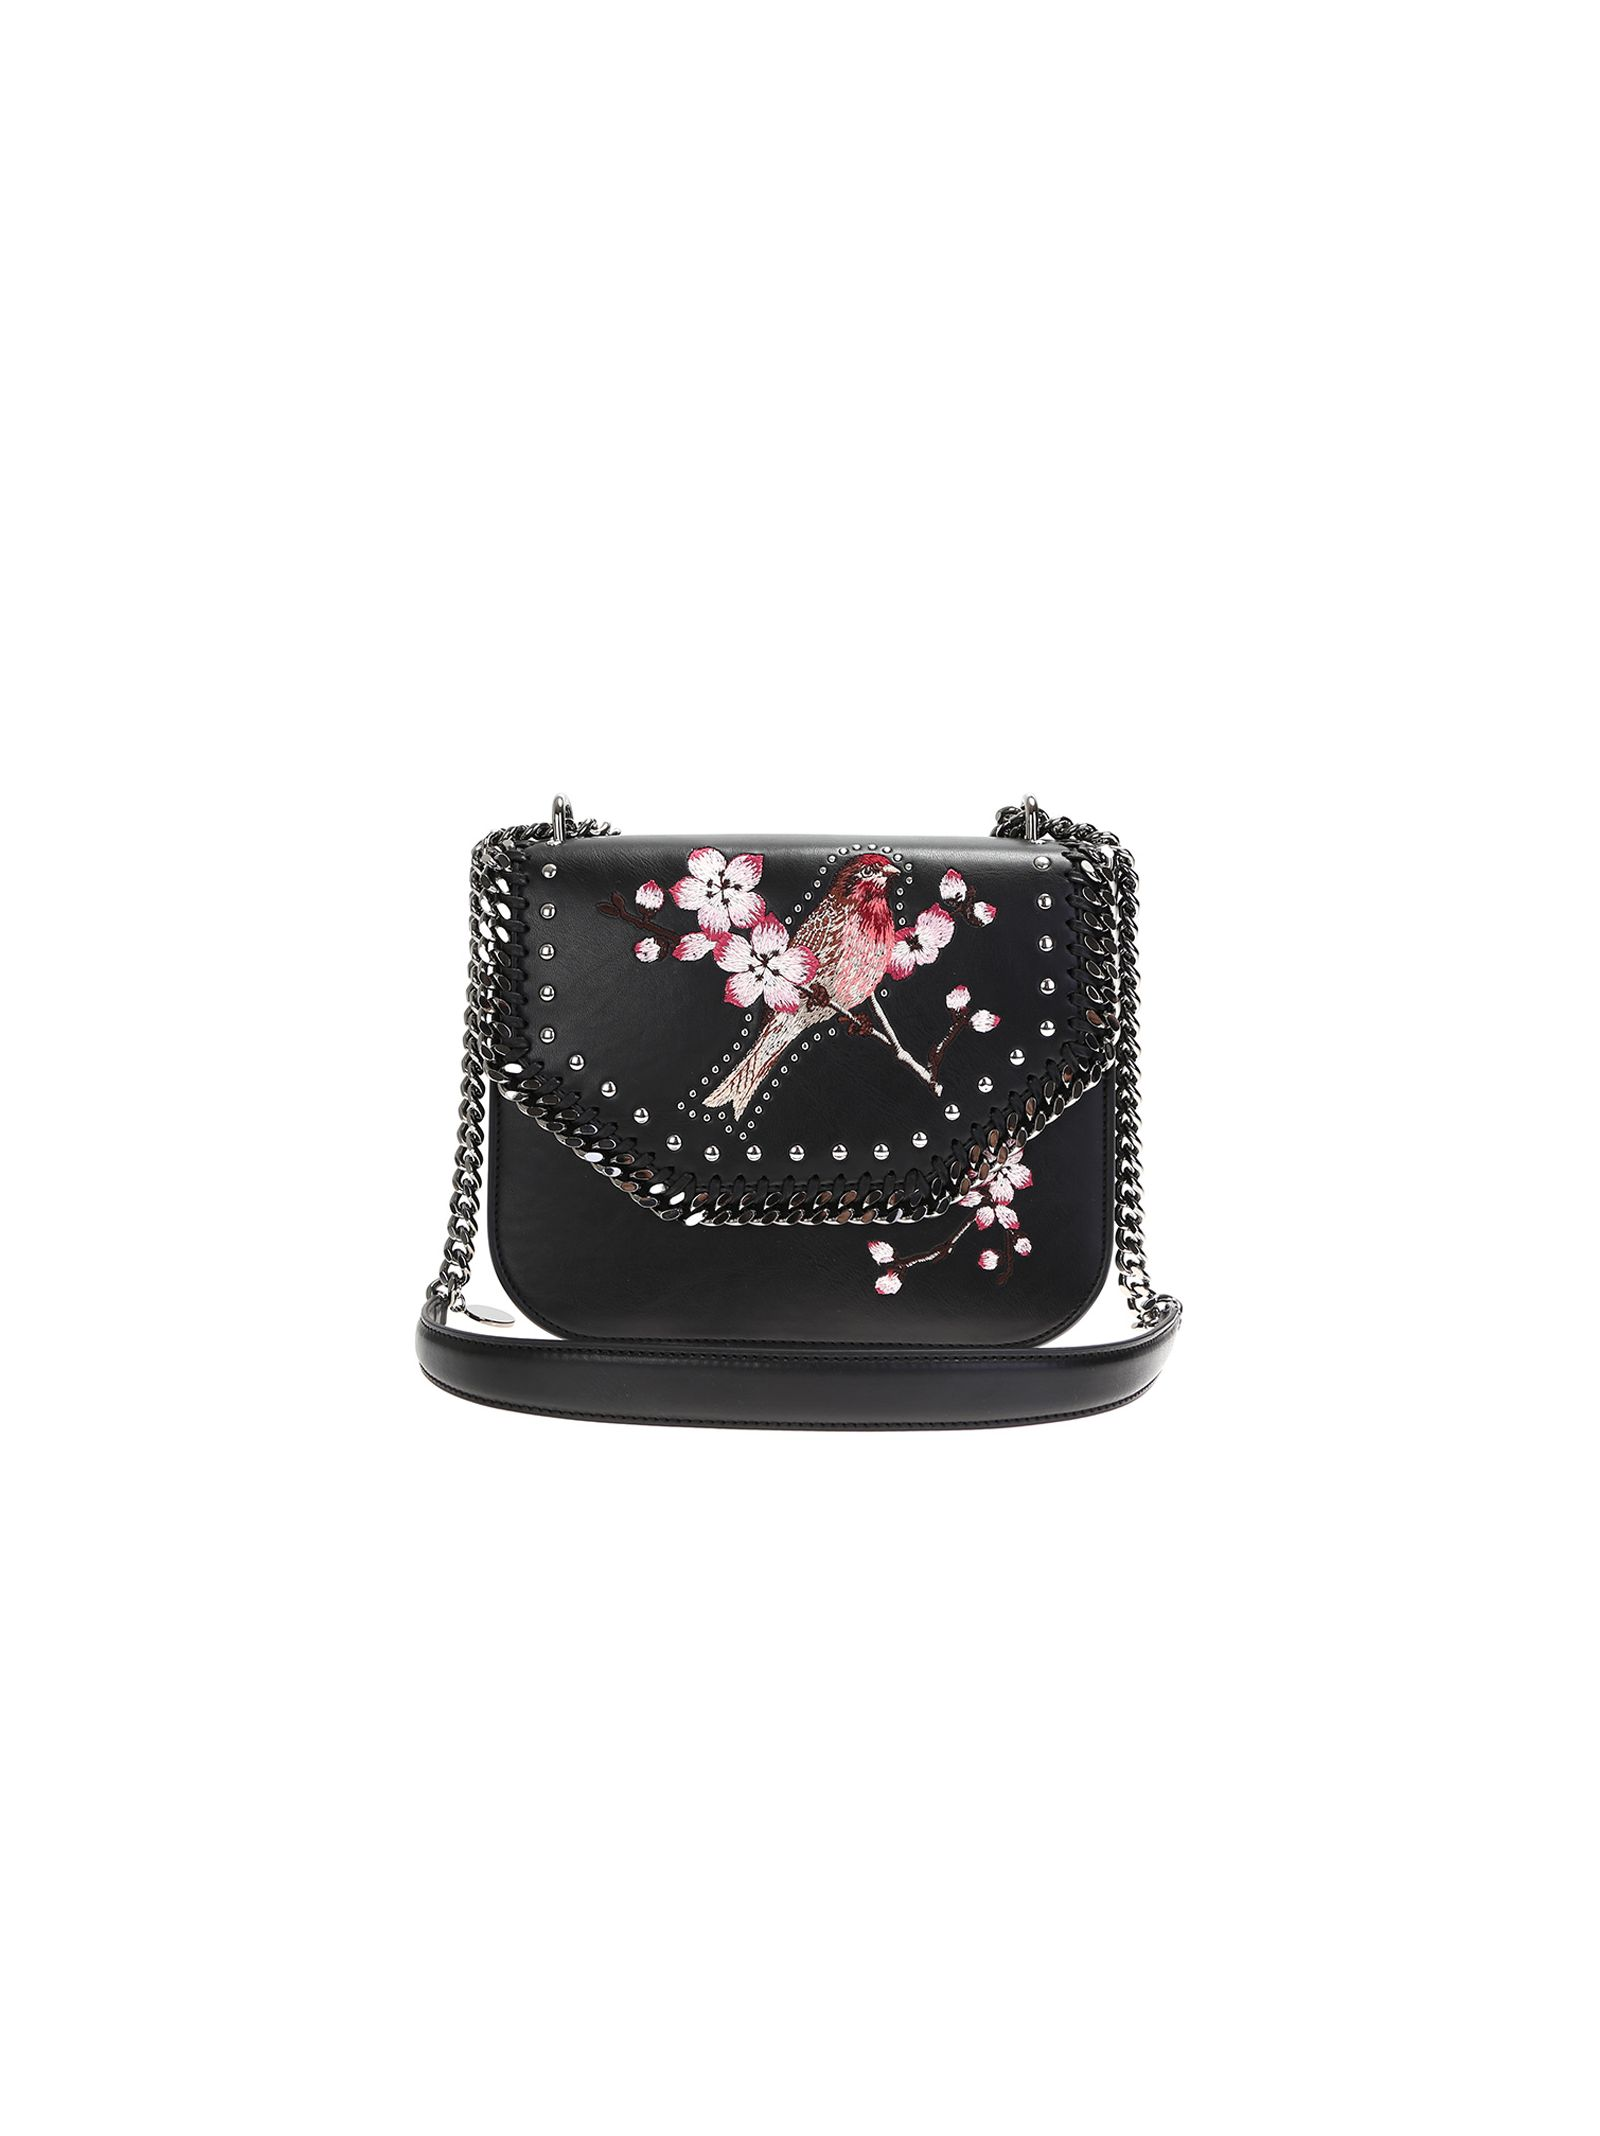 stella mccartney female embroidered birt black ecoleather falabella bag